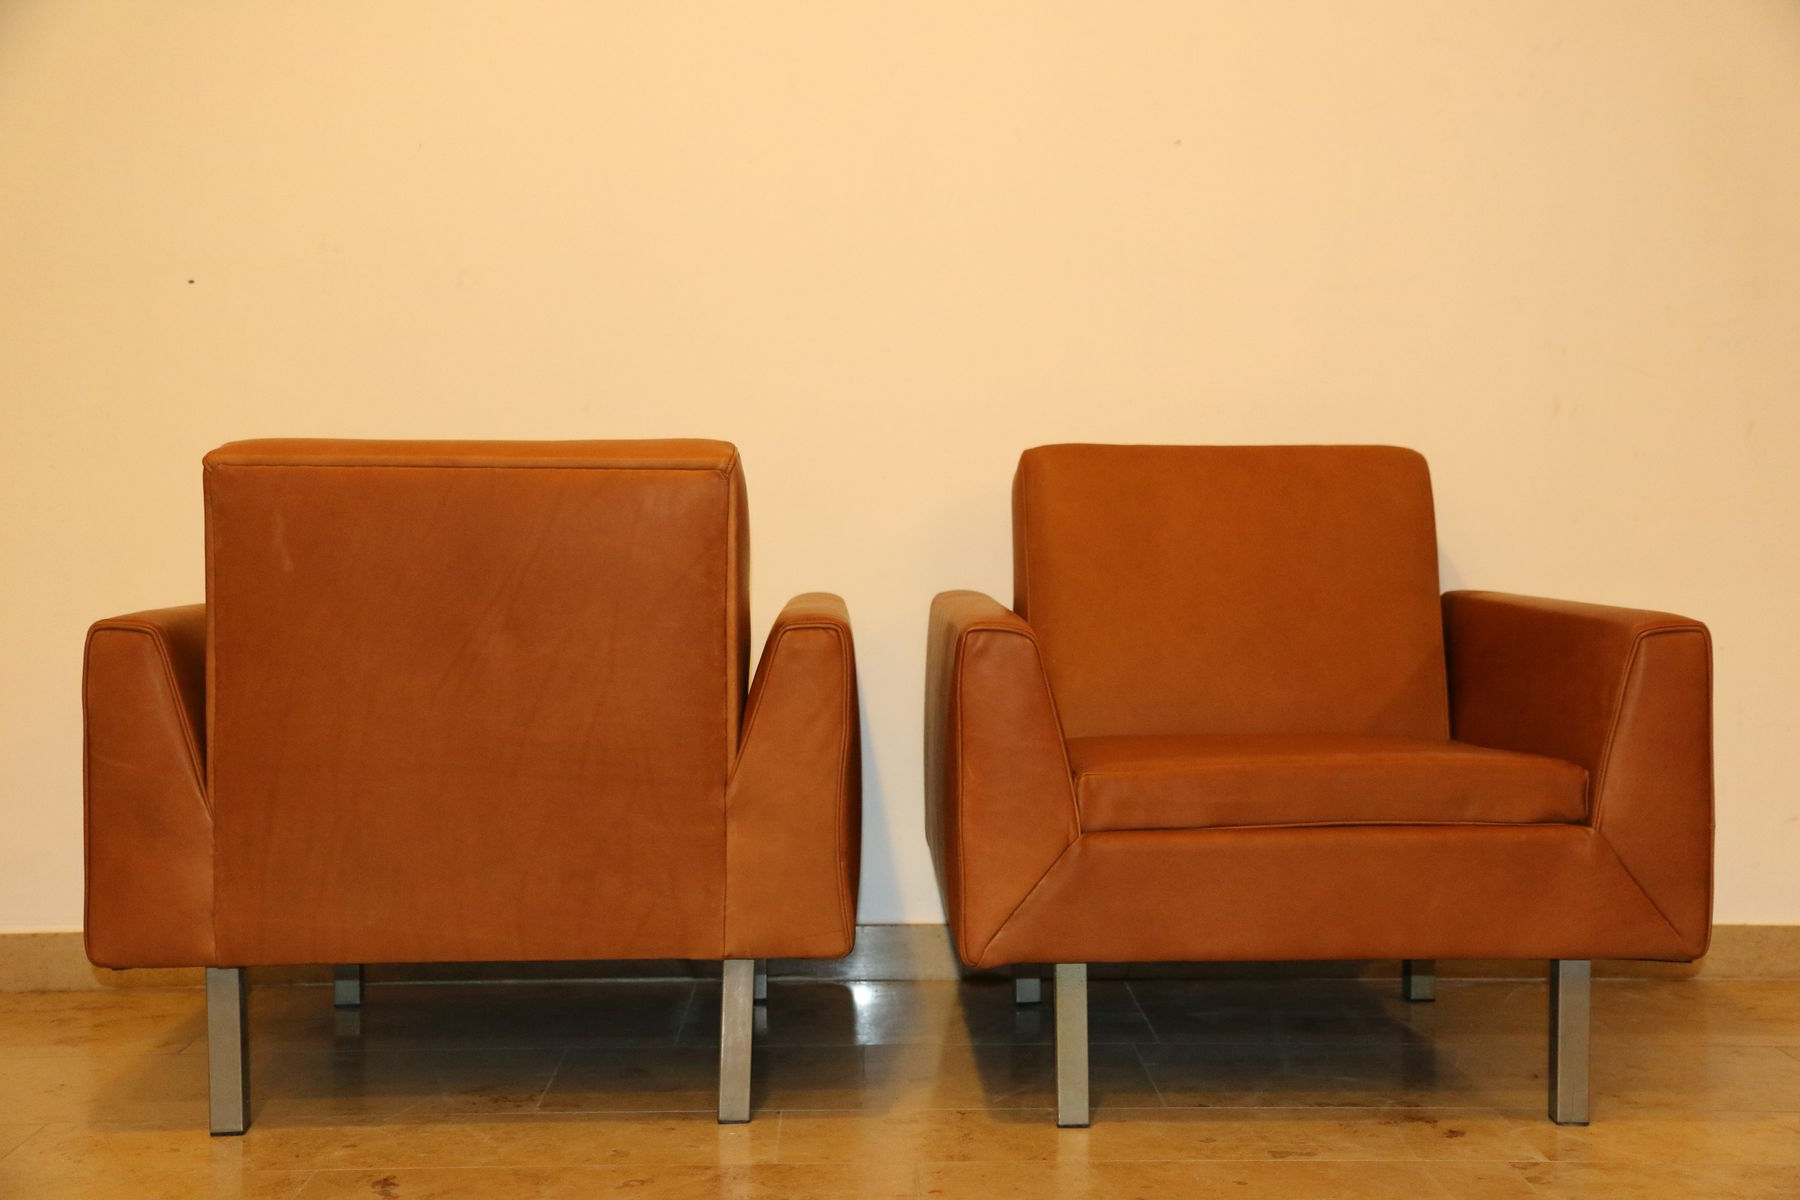 Latest 410 Club Chairstheo Ruth For Artifort, 1956, Set Of 2 For Sale Intended For Theo Ii Swivel Chairs (View 11 of 20)